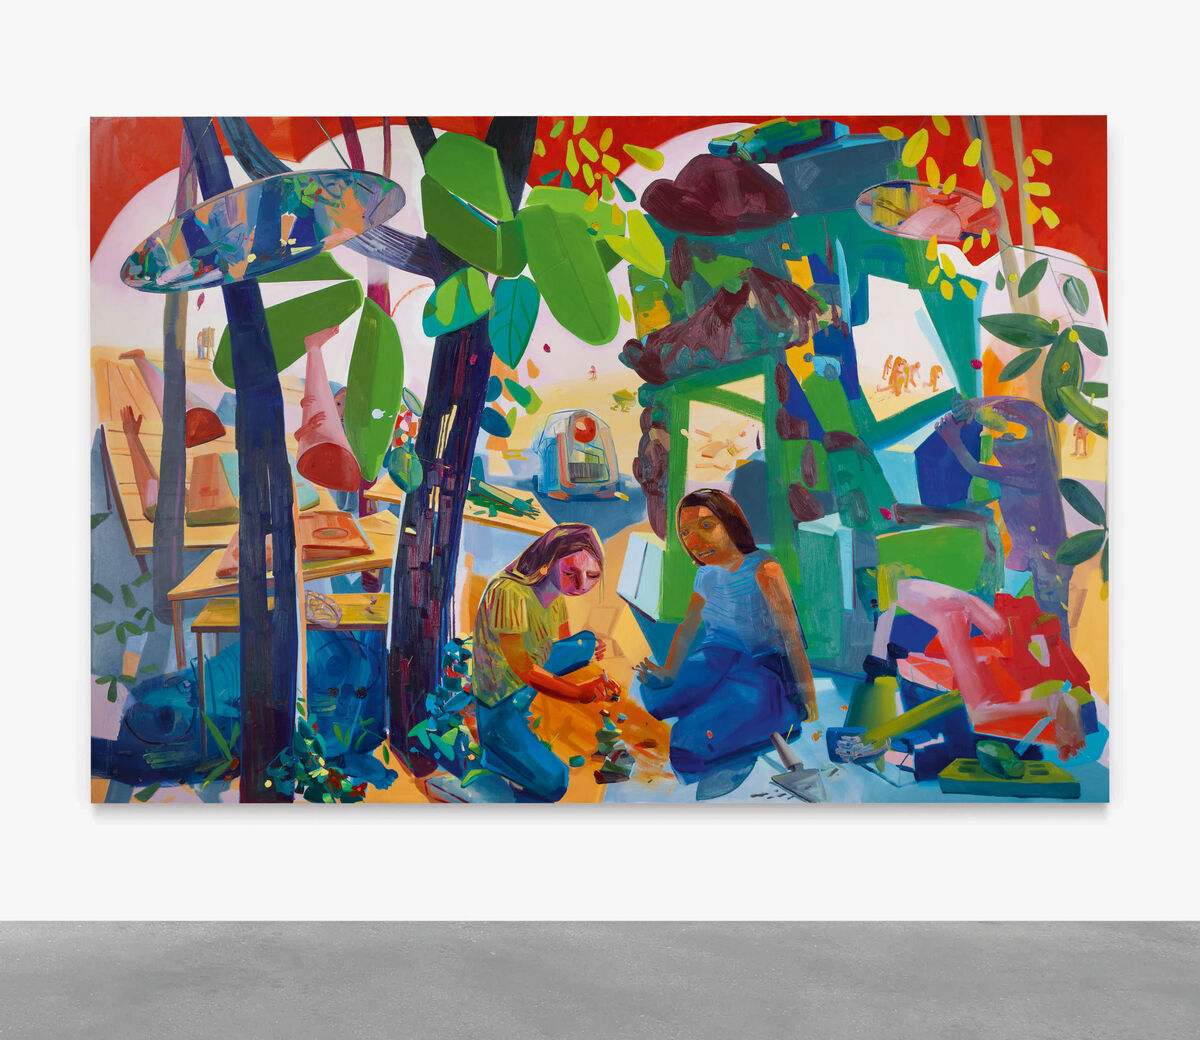 Dana Schutz, Civil Planning, 2004. Courtesy of Sotheby's.